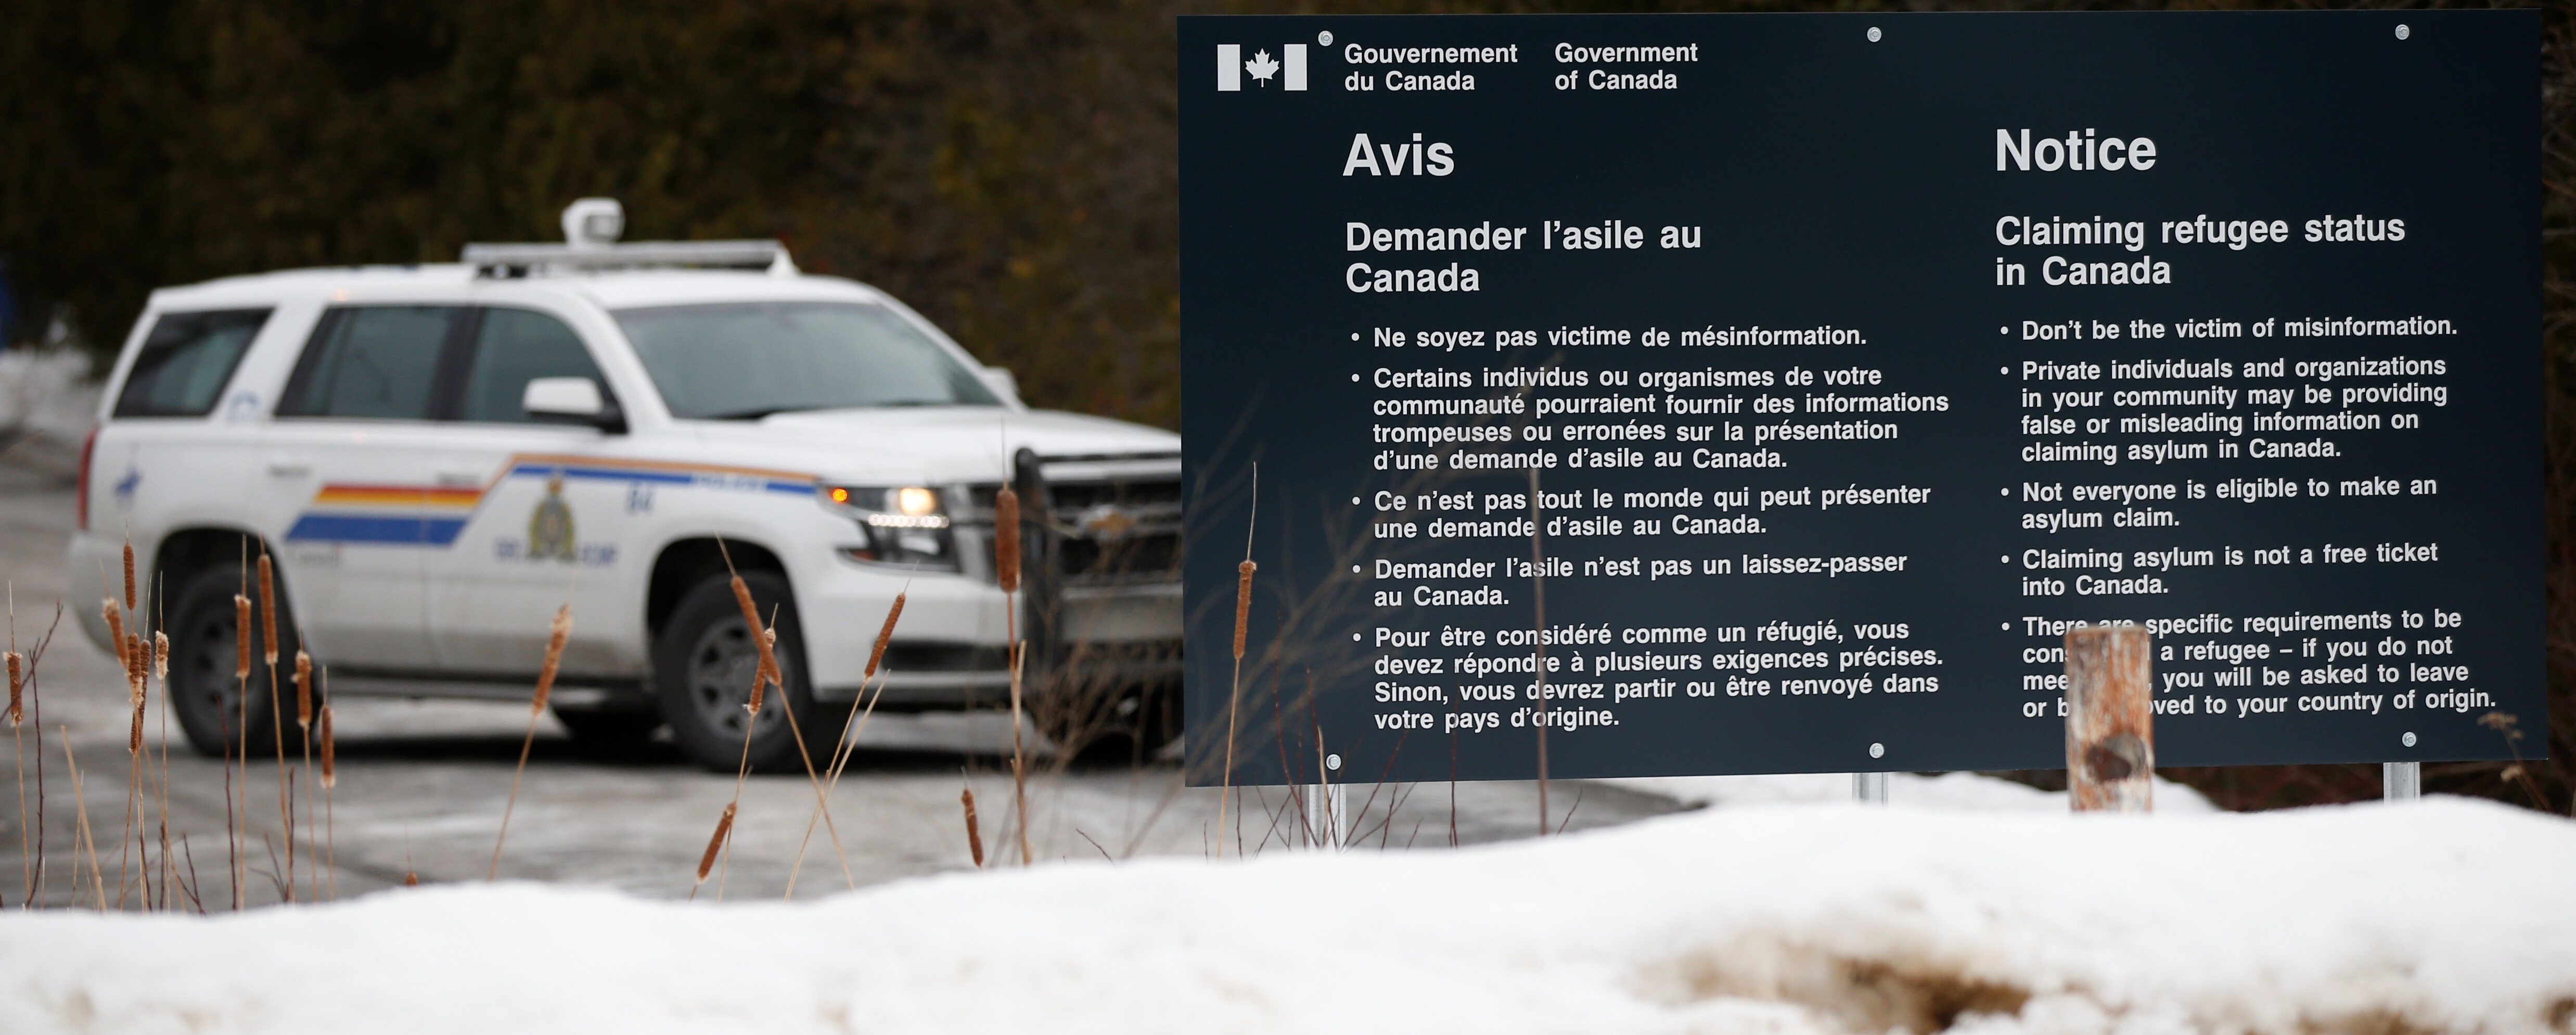 A Royal Canadian Mounted Police (RCMP) vehicle is seen near a sign at the US-Canada border in Lacolle, Quebec, Canada, February 14, 2018. REUTERS/Chris Wattie